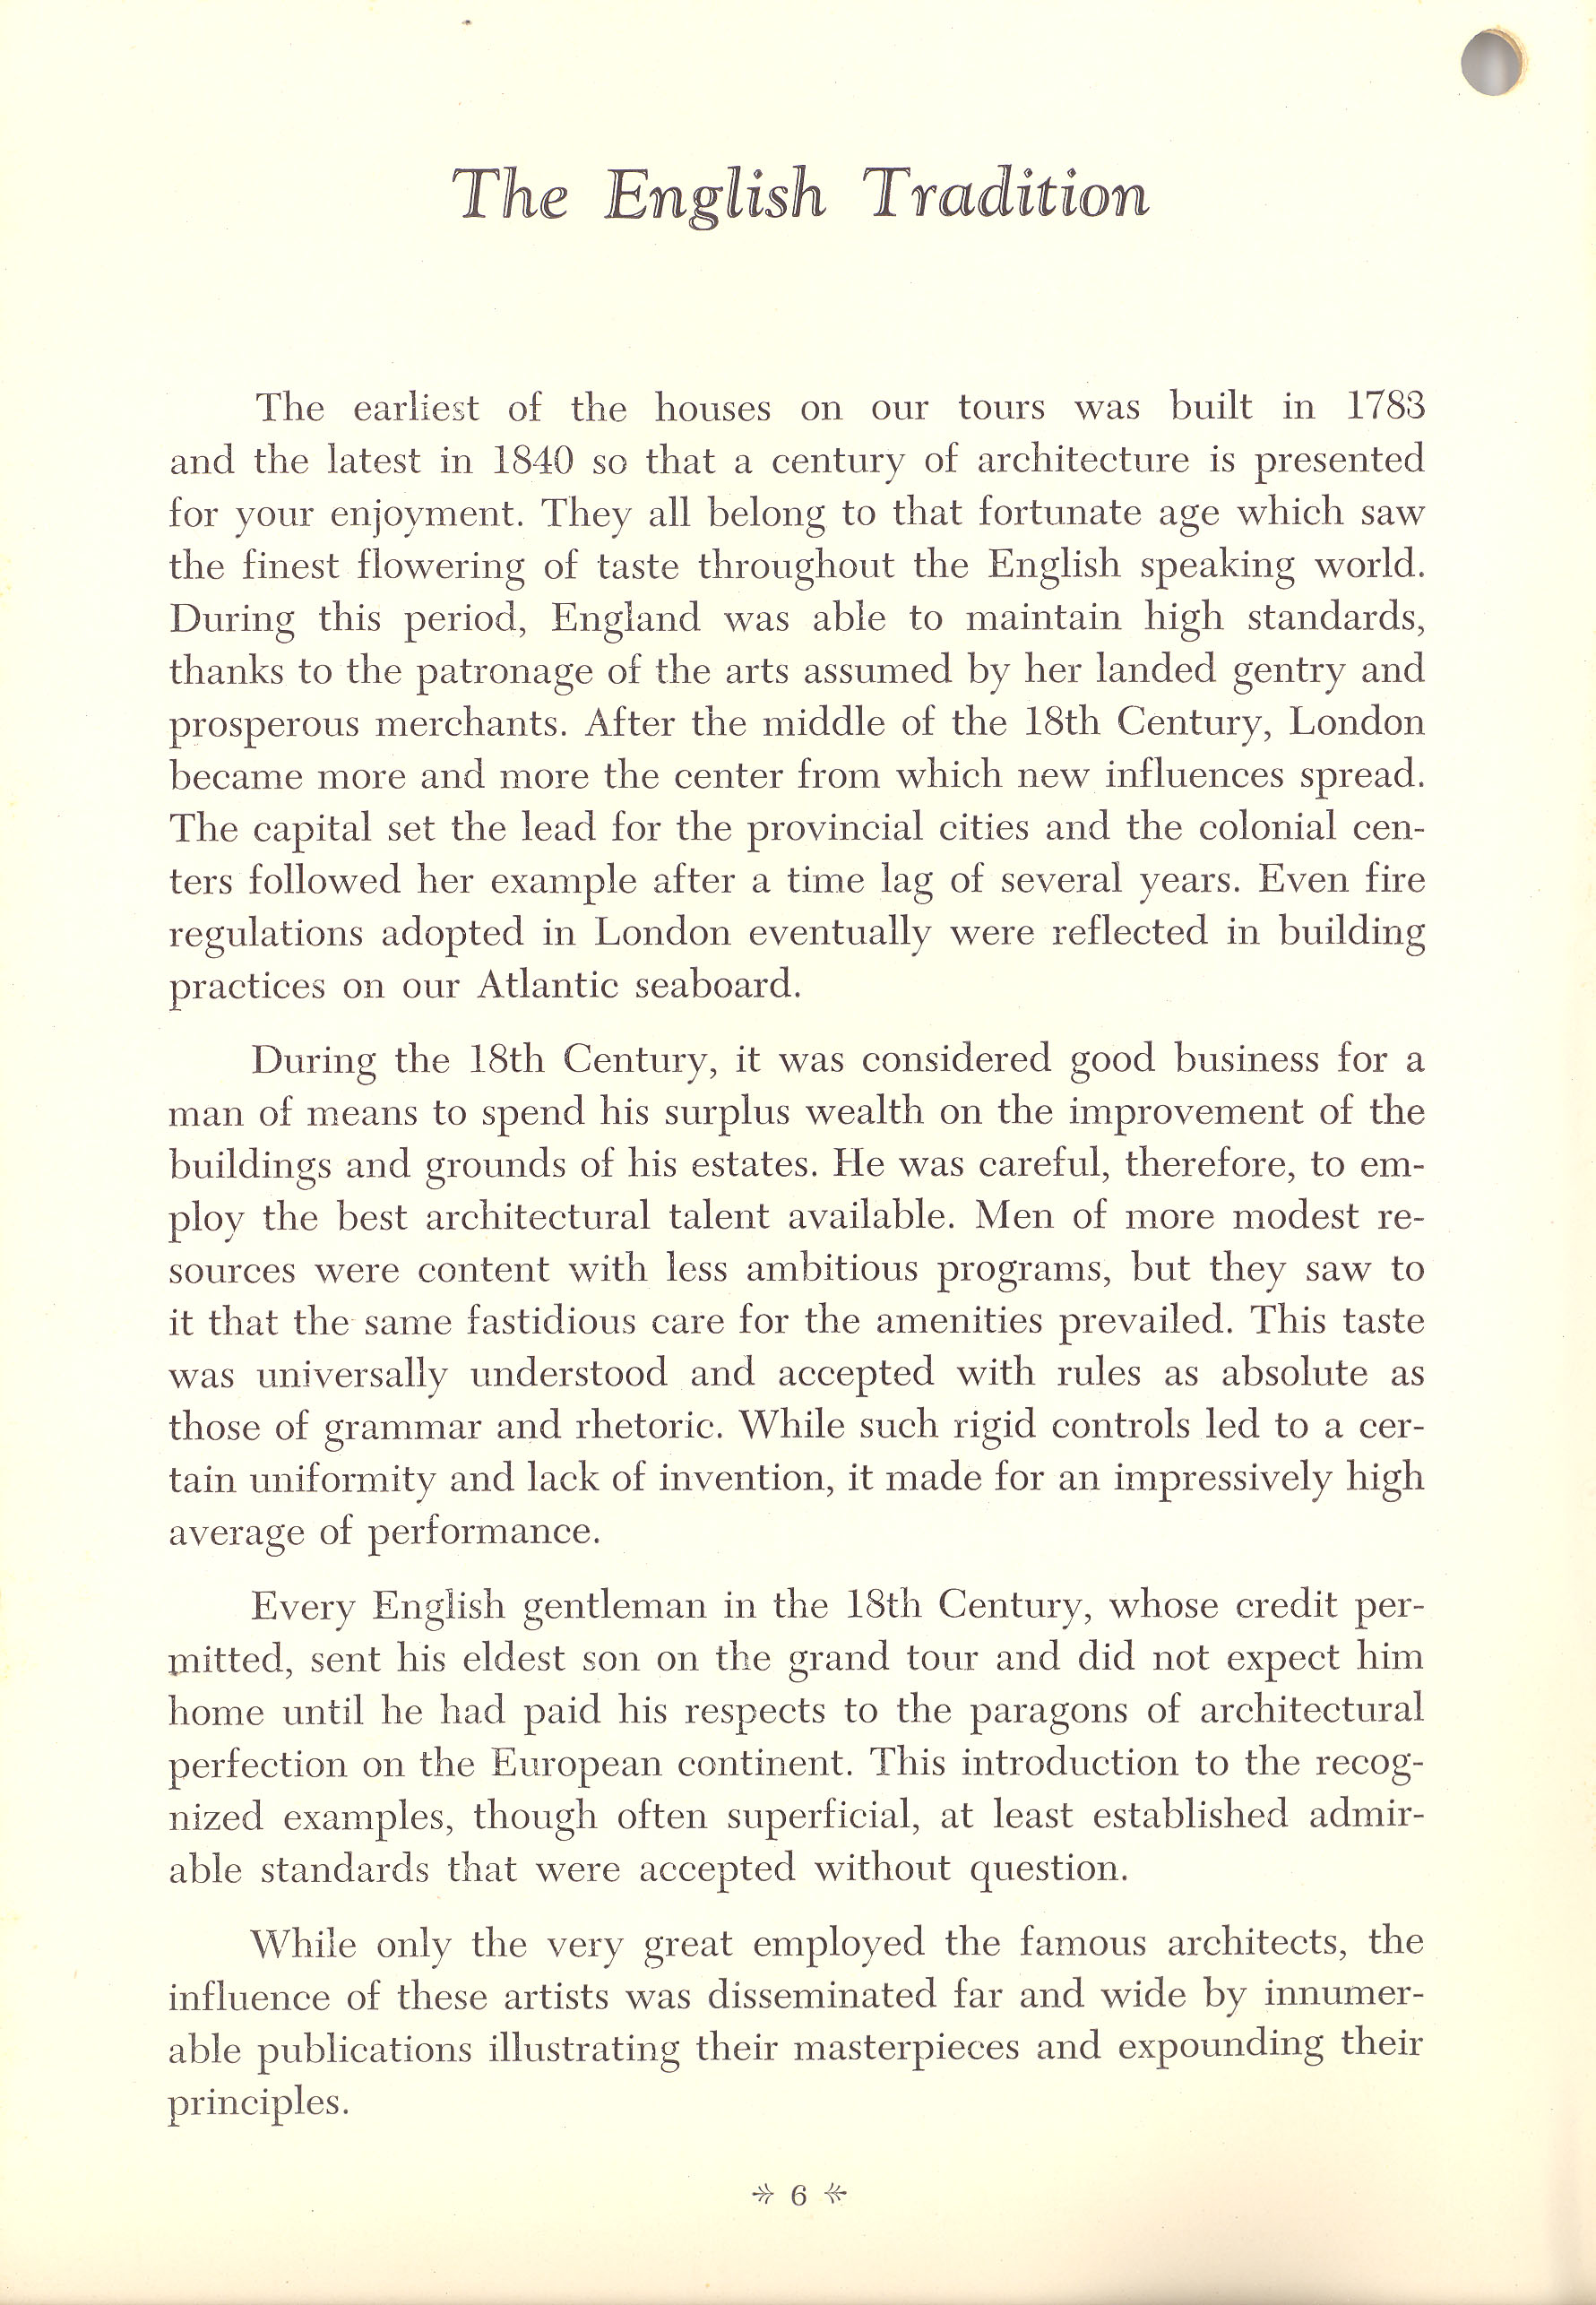 Page 6: